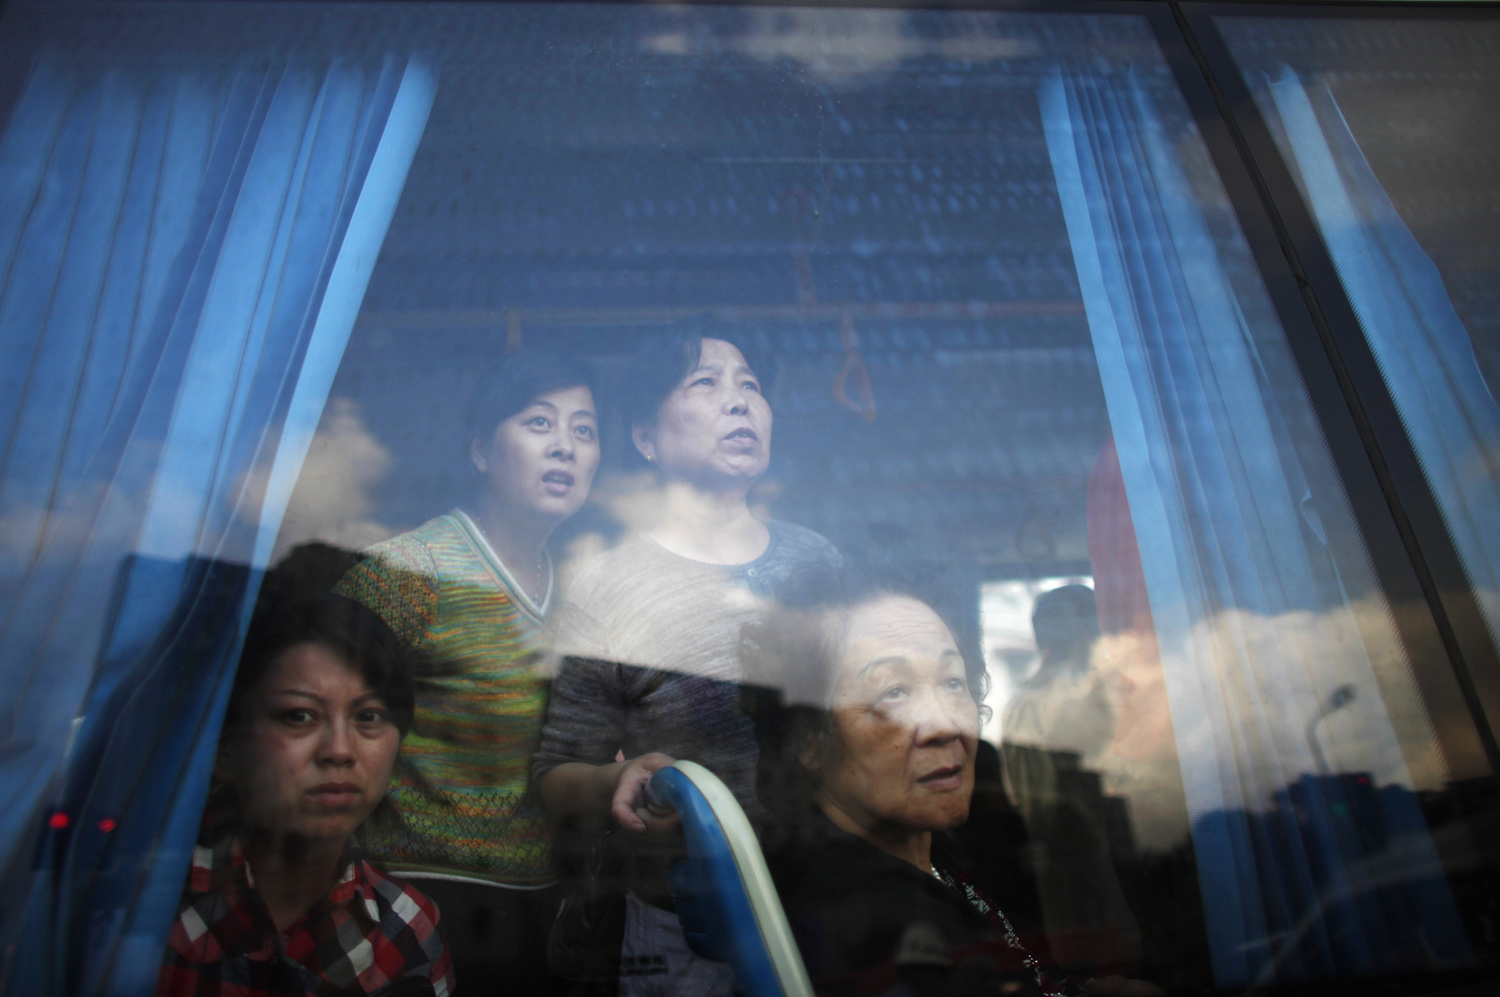 September 27, 2011. People look on from inside a bus at the rescue operations taking place at Yu Yuan Garden station after a subway train collision in Shanghai. Two subway trains collided in Shanghai injuring over 200 passengers.